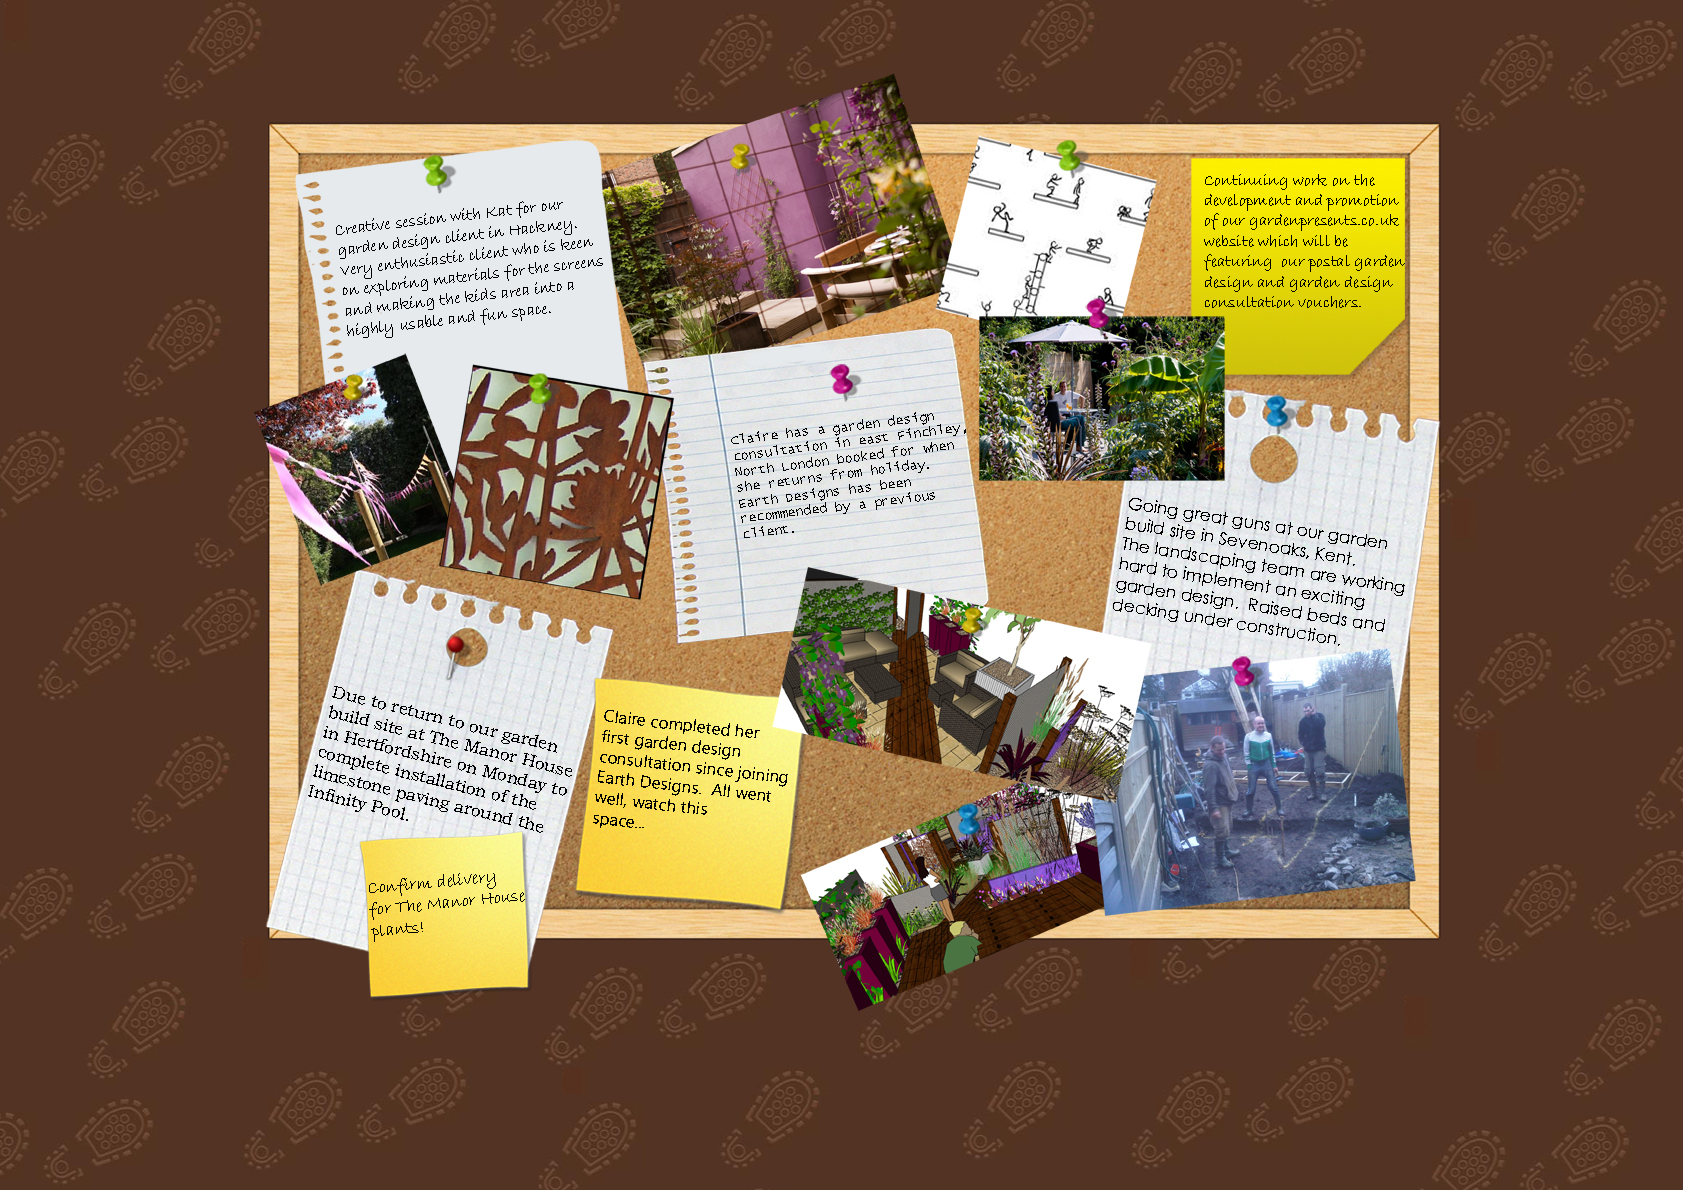 Diary of a London Garden Design and Build Company: Week 3 2011